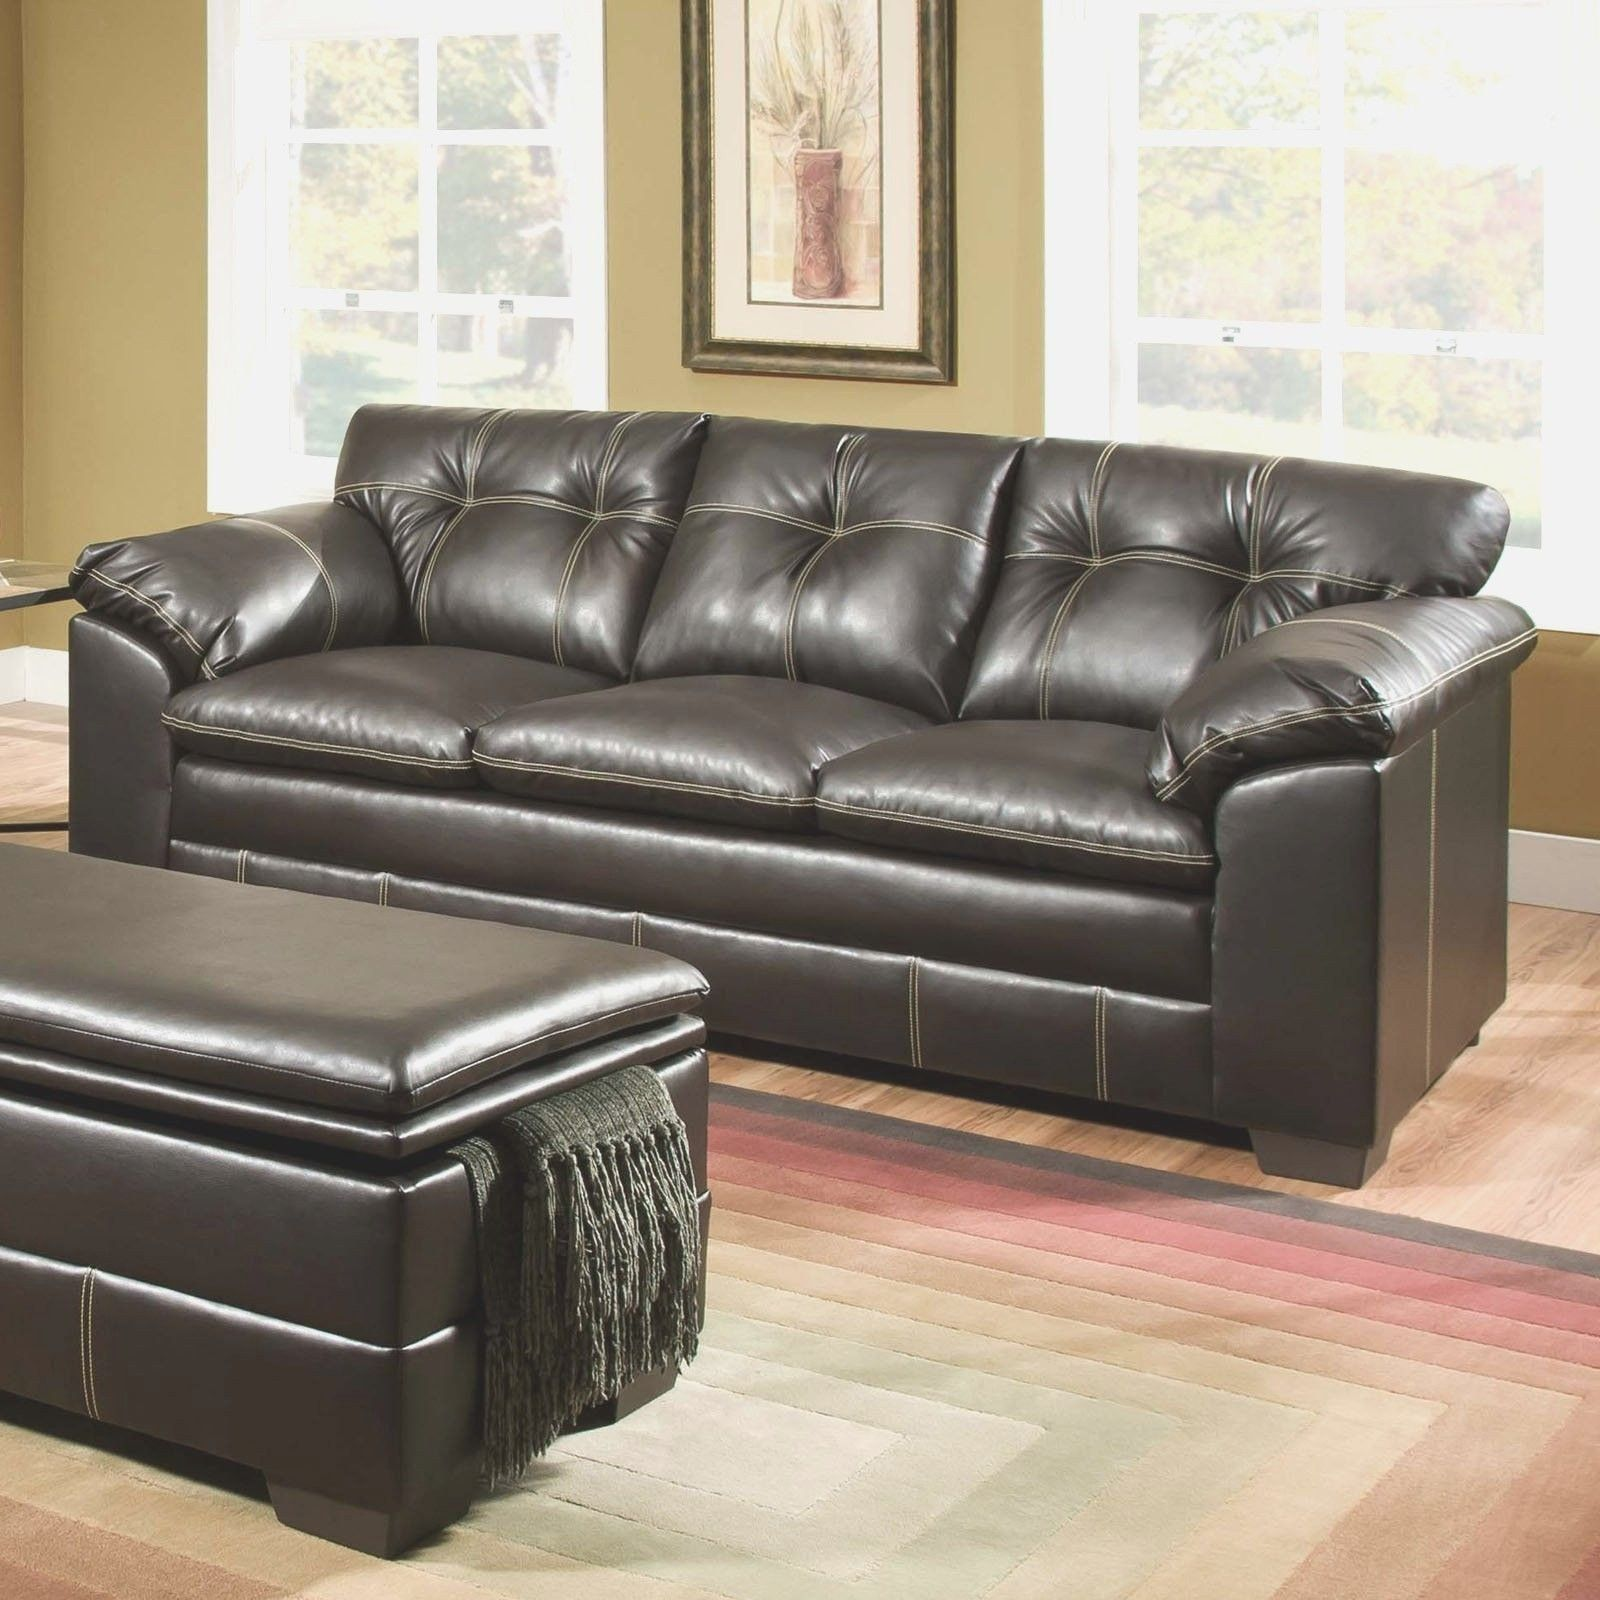 Big Lots Living Room Tables Luxury Marvelous Big Lots Furniture Living Room Tables Settee Ideas In 2020 Leather Sofa Best Leather Sofa Sofa Deals